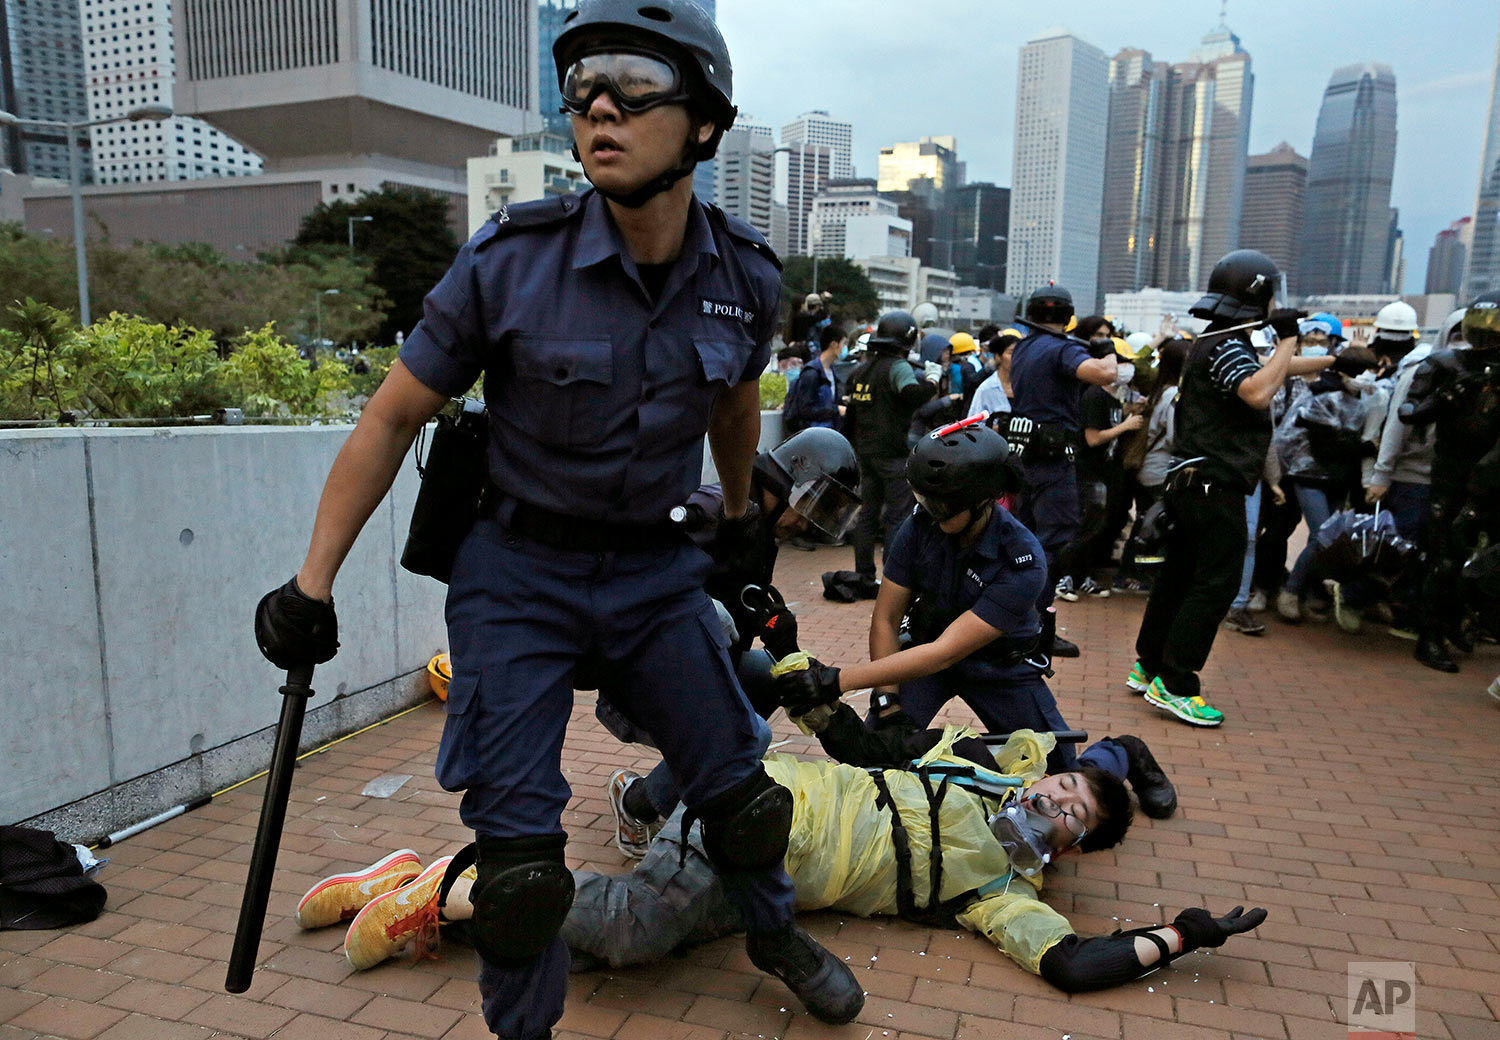 A protester is arrested by police officers outside government headquarters in Hong Kong, Dec. 1, 2014. (AP Photo/Vincent Yu)